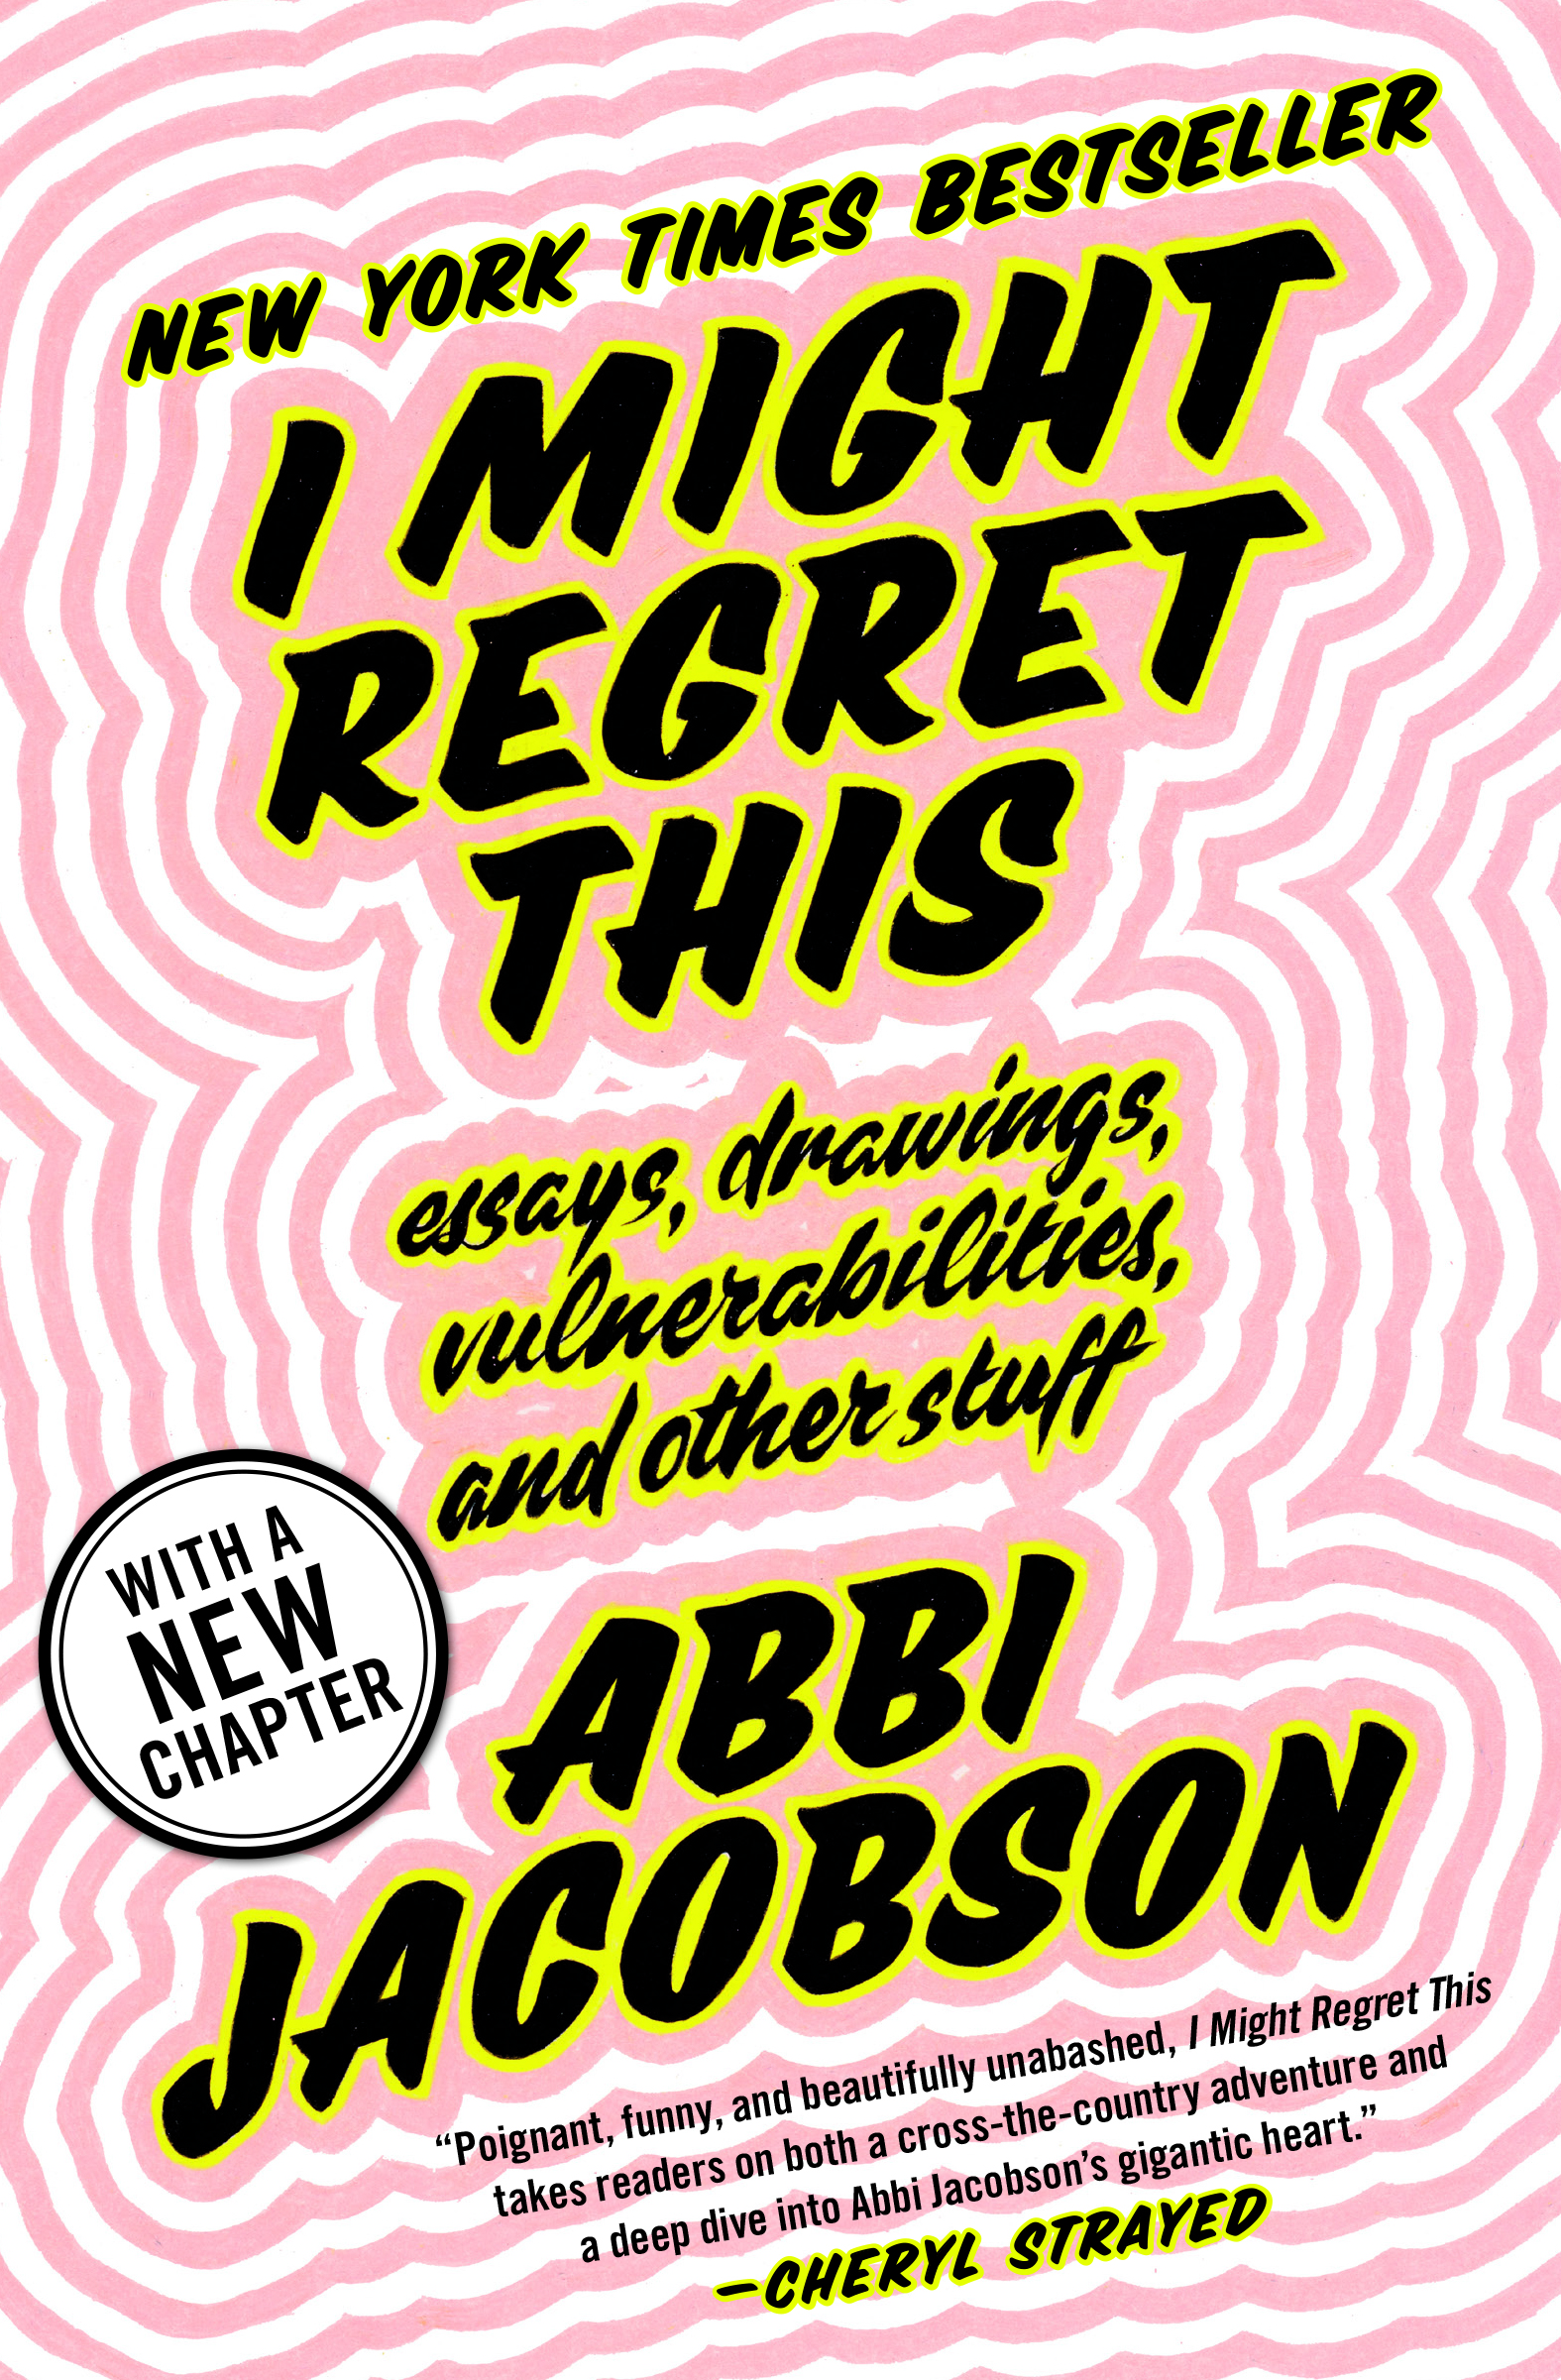 Paperback Launch: I Might Regret This by Abbi Jacobson in conversation with Ariel Levy